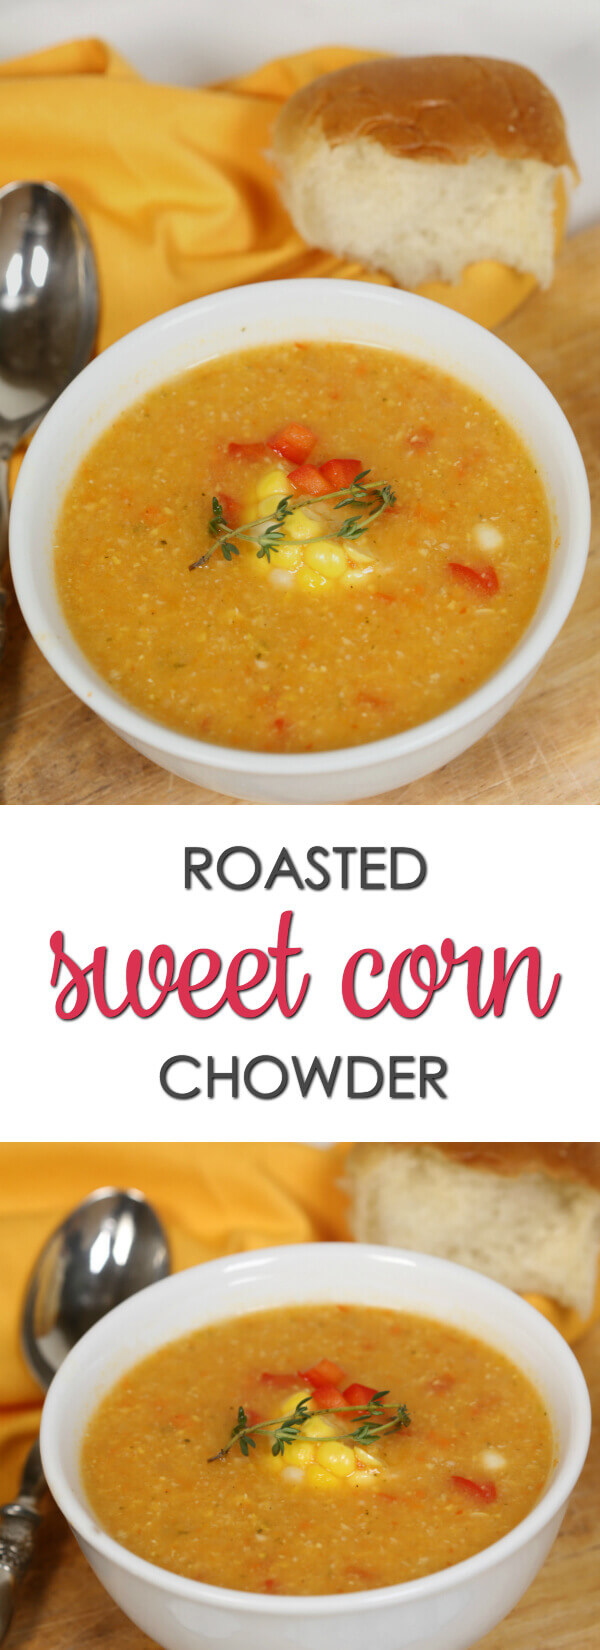 Roasted Sweet Corn Chowder - this flavorful soup is bursting with sweet corn flavor